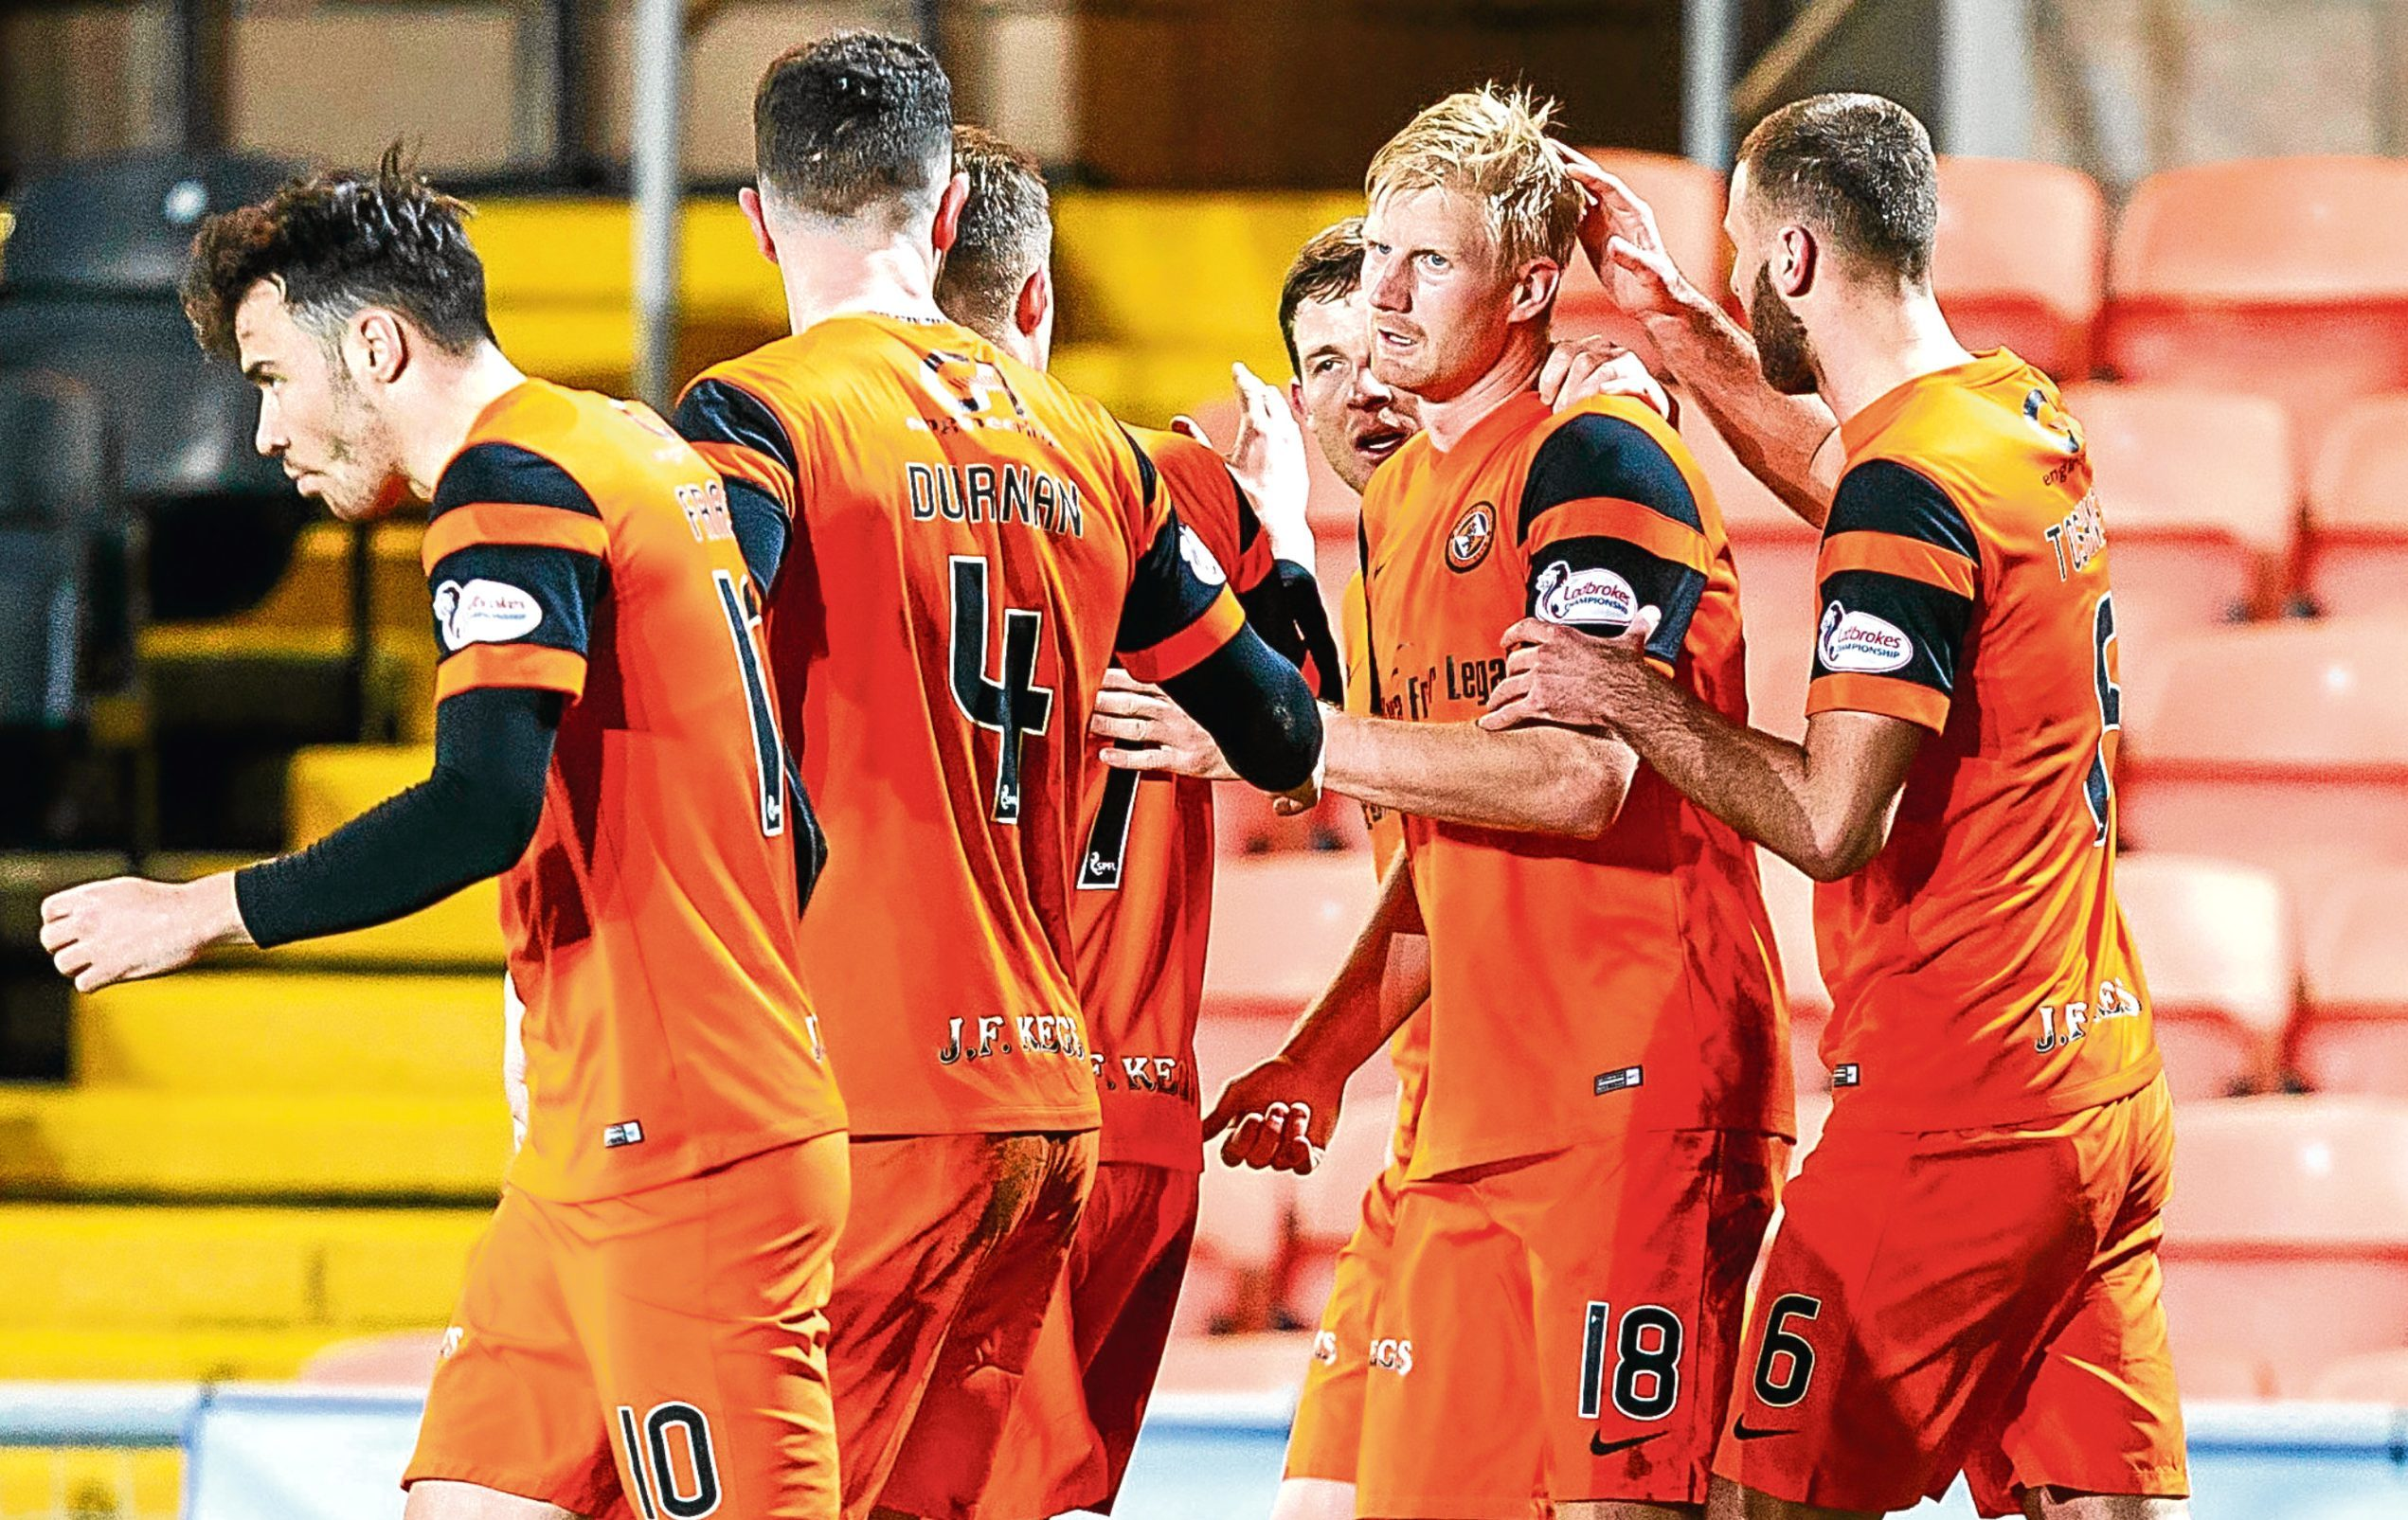 Mikkelsen (18) celebrates with teammates after scoring his side's first goal against Raith